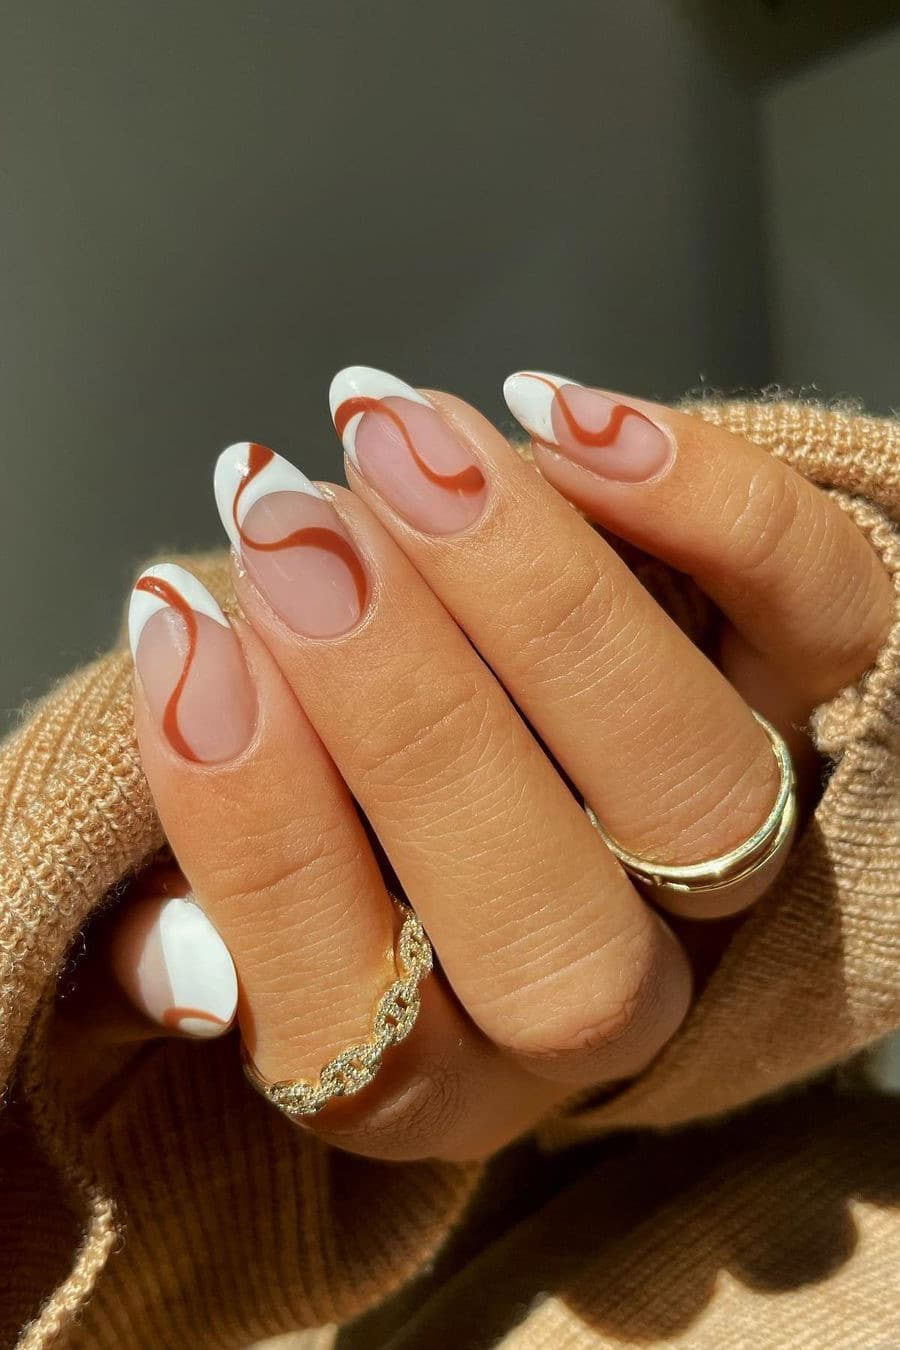 White and brown nails